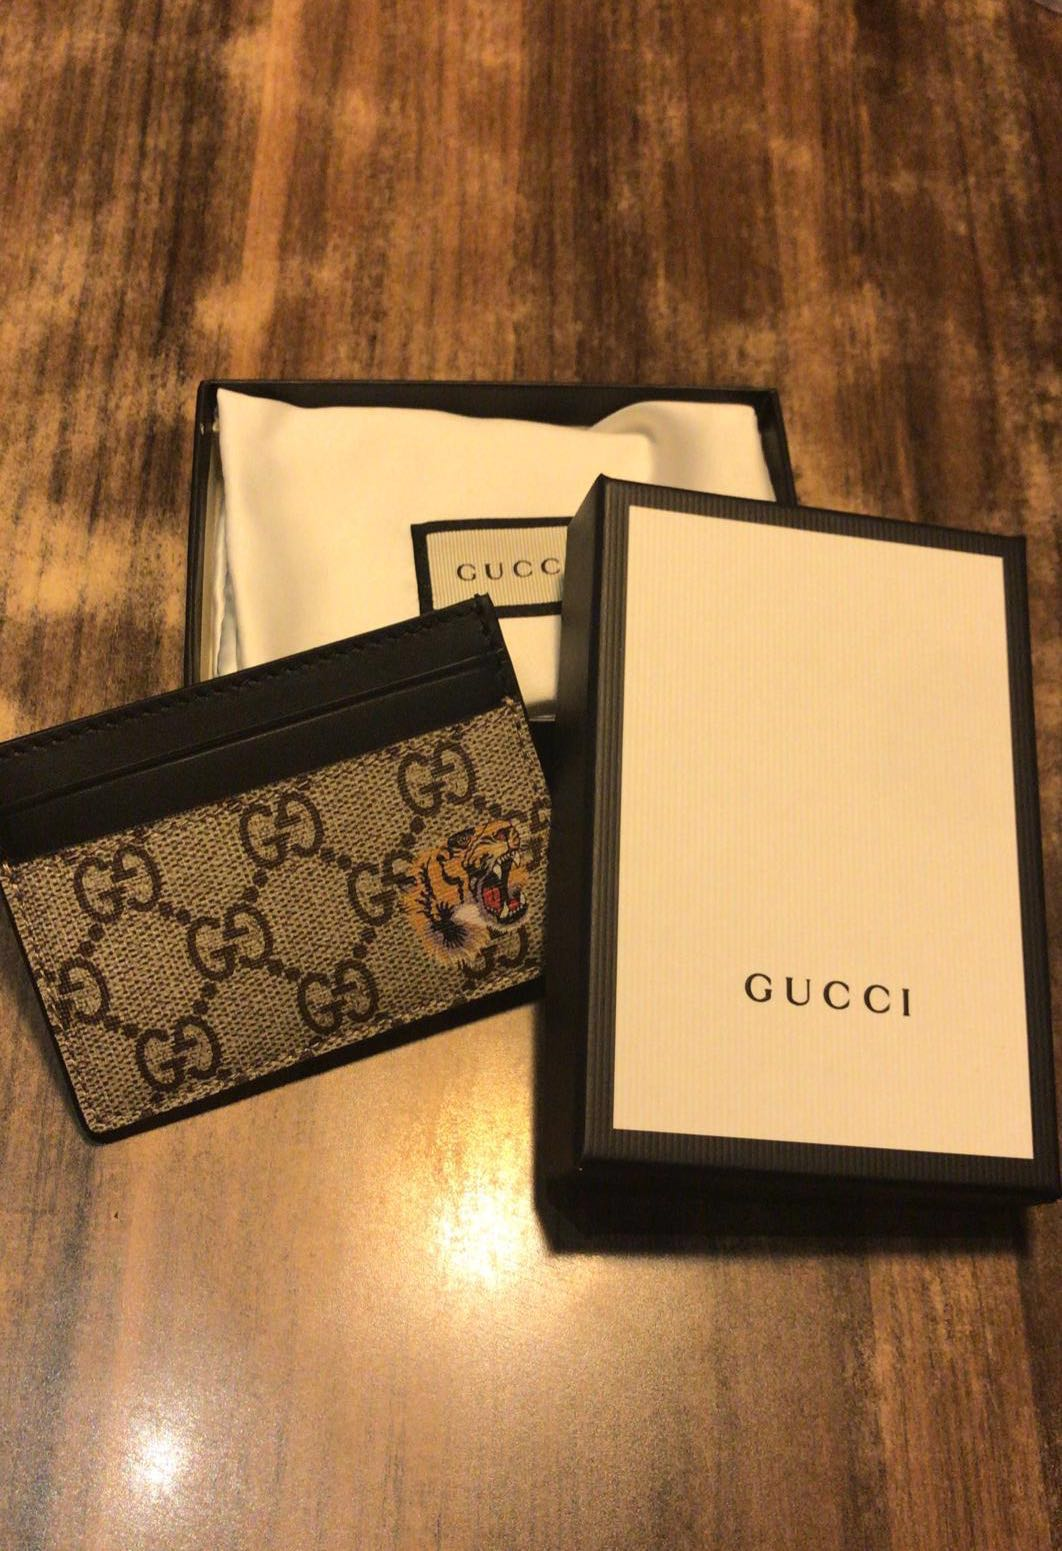 b3692143f7e9 Gucci Men Wallet Card Holder, Men's Fashion, Bags & Wallets, Wallets ...